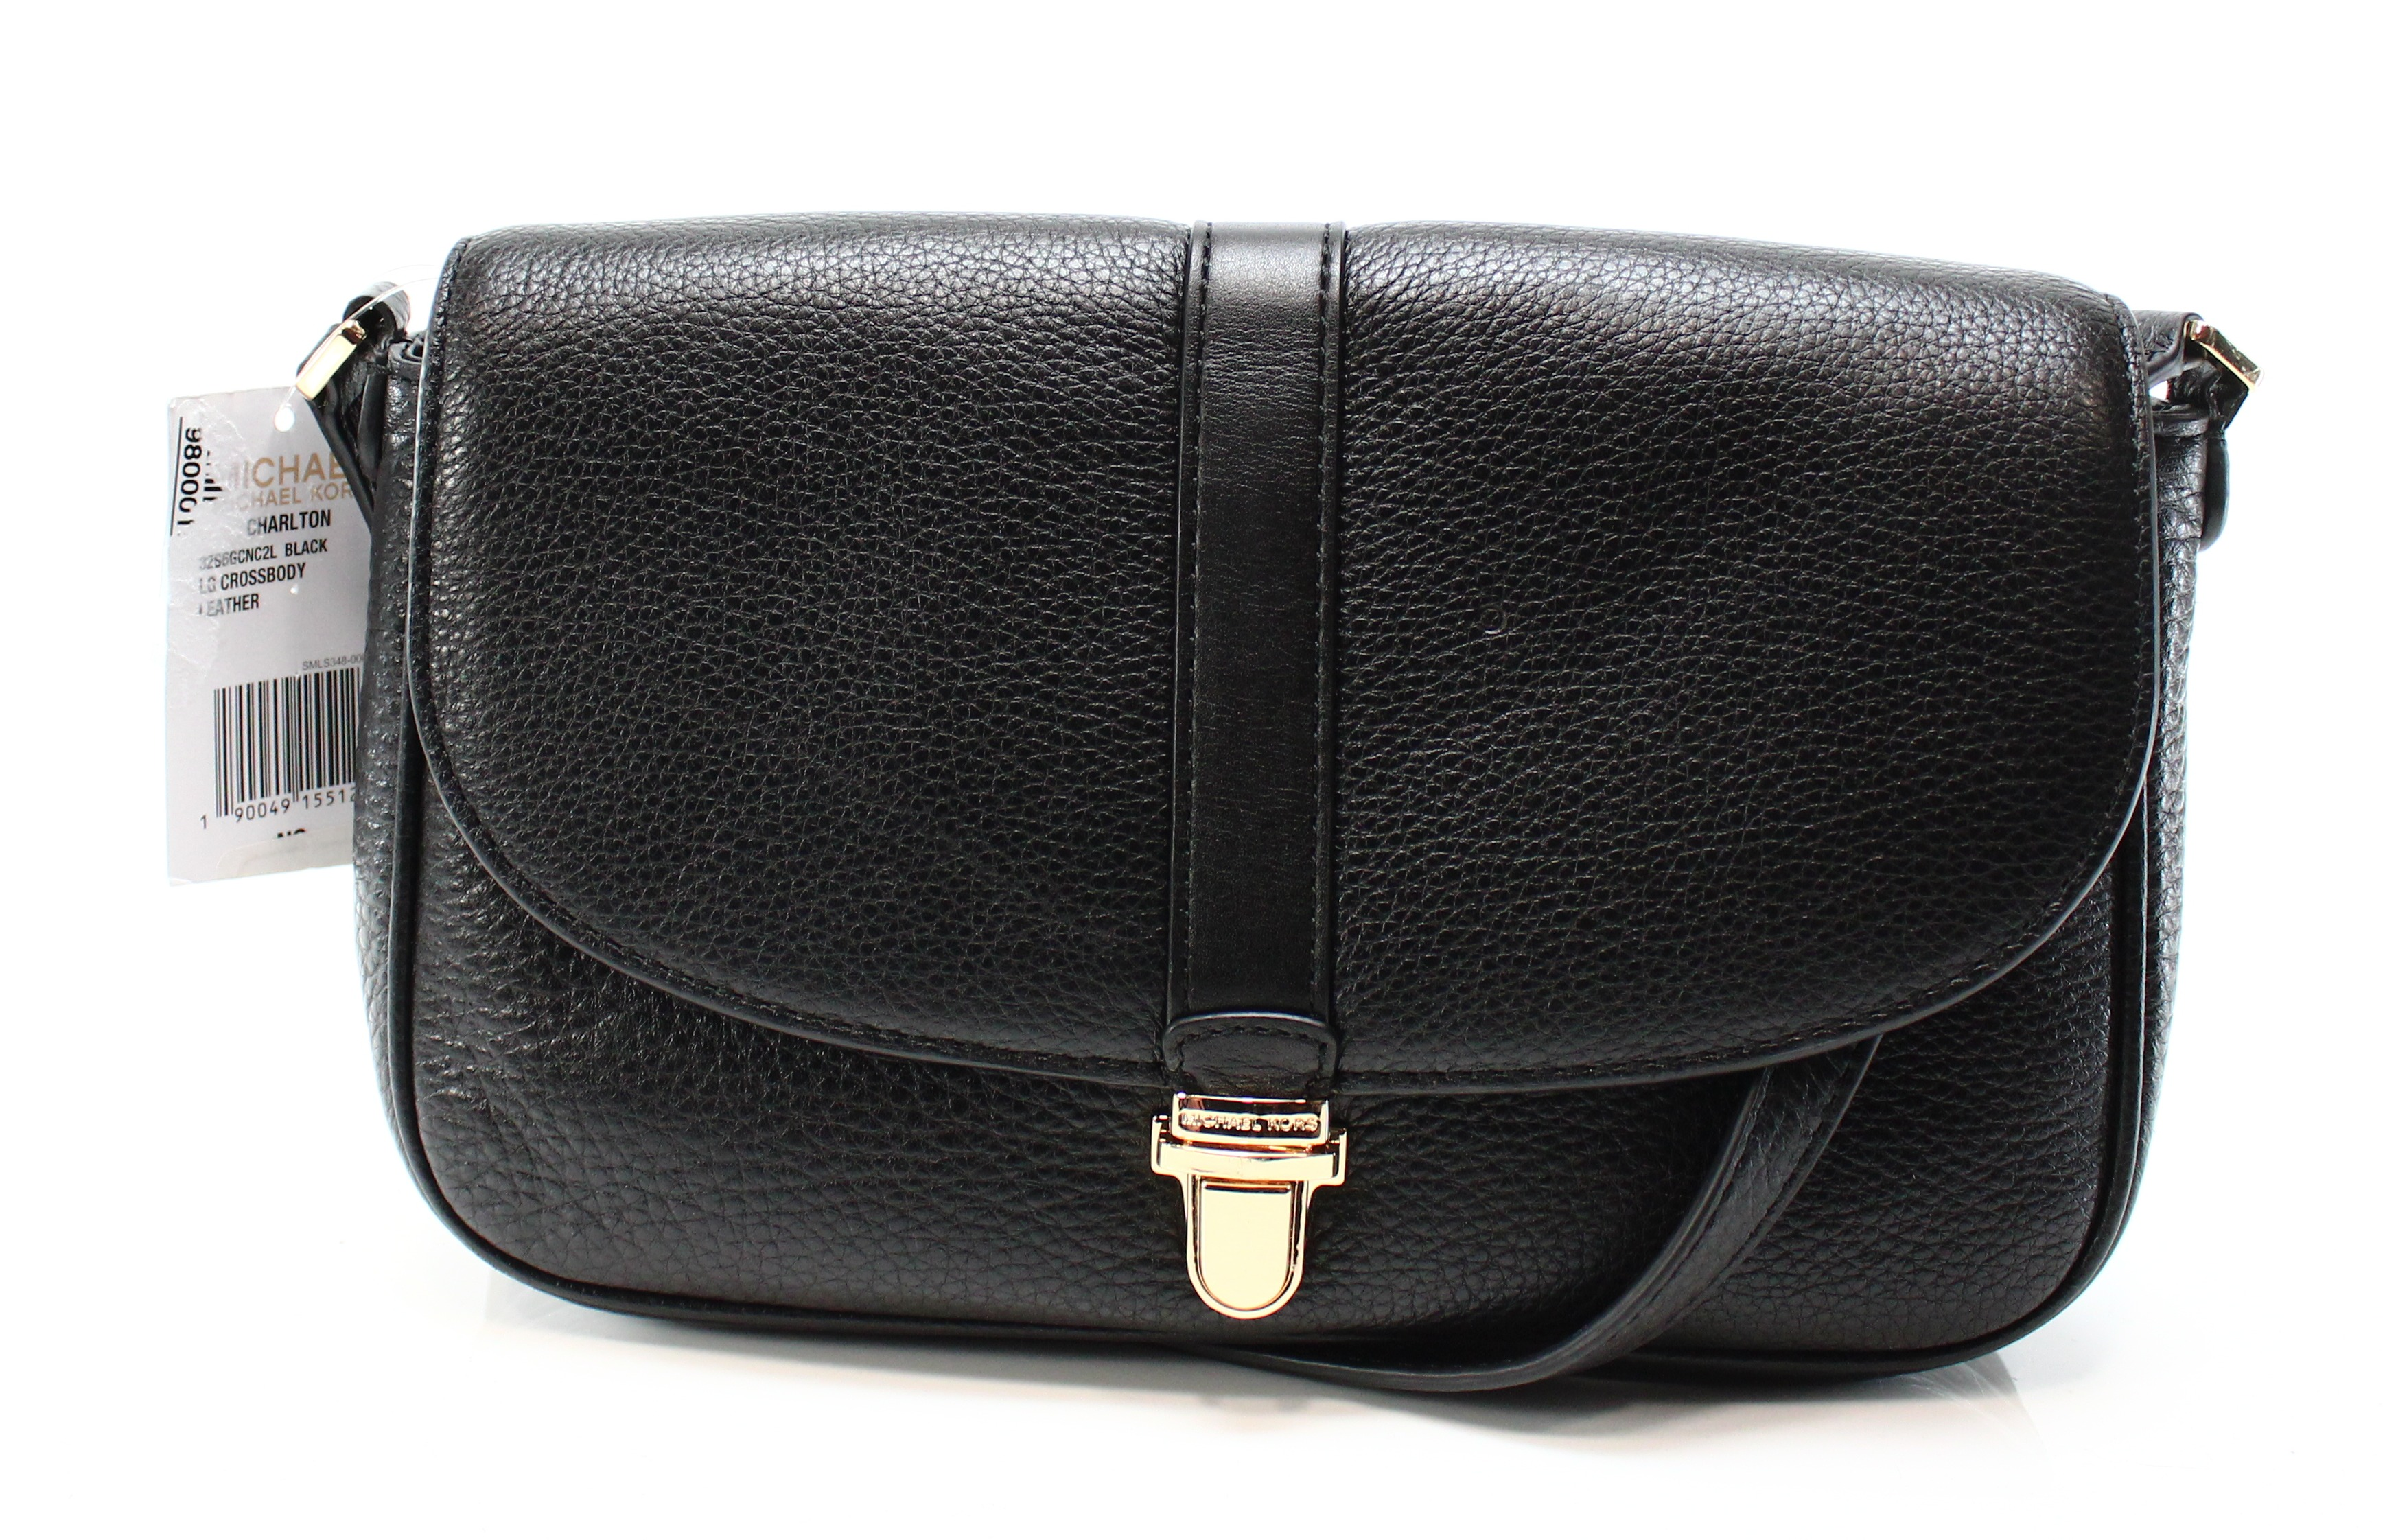 a3ef541252d695 Michael Kors Black Leather Crossbody Purse | Stanford Center for ...